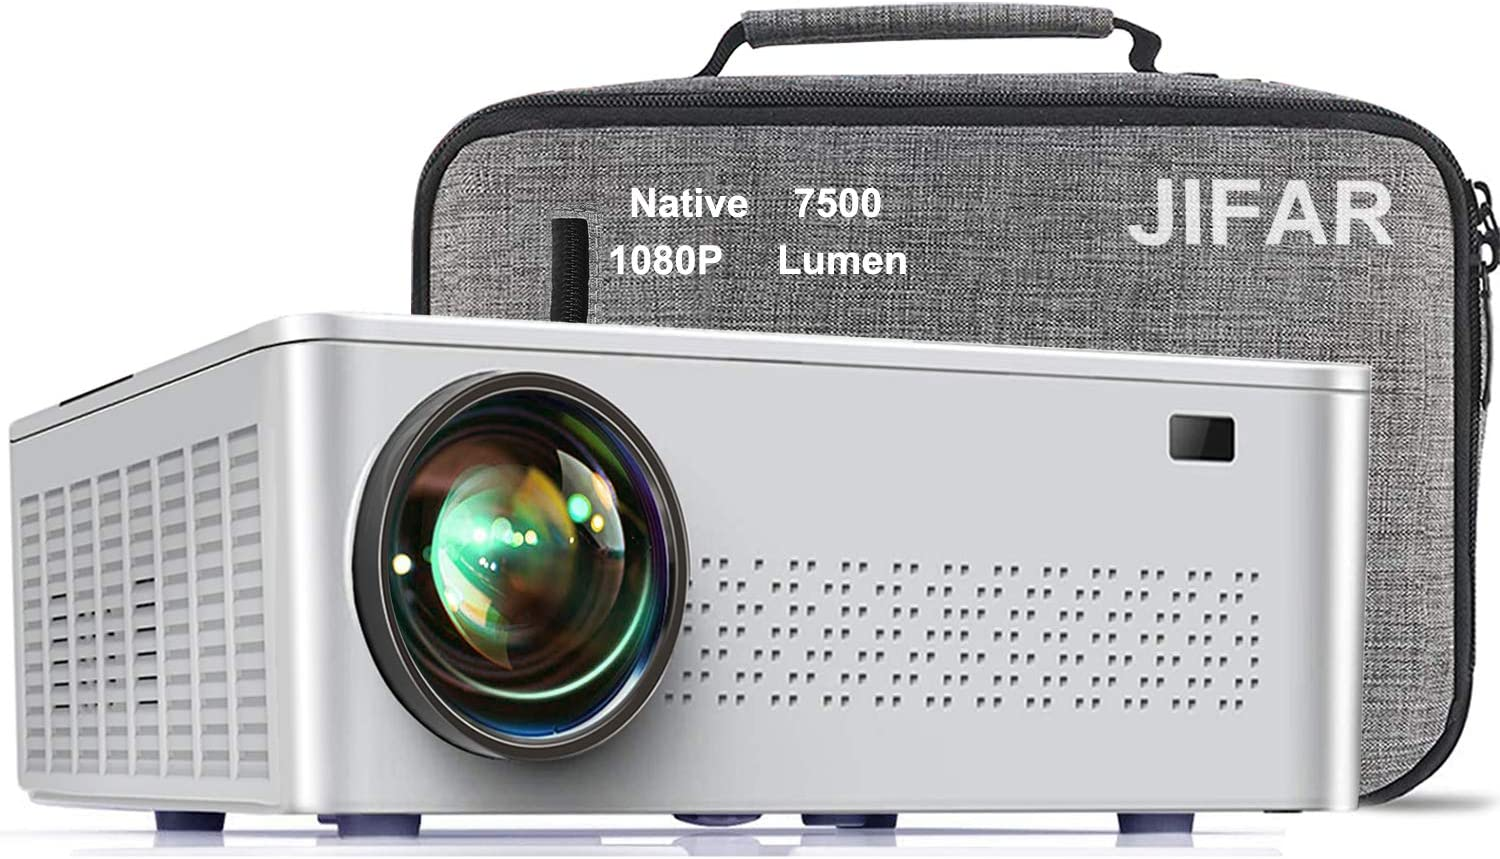 Native 1080P Projector,7500 L Projector for Outdoor Movies with 400